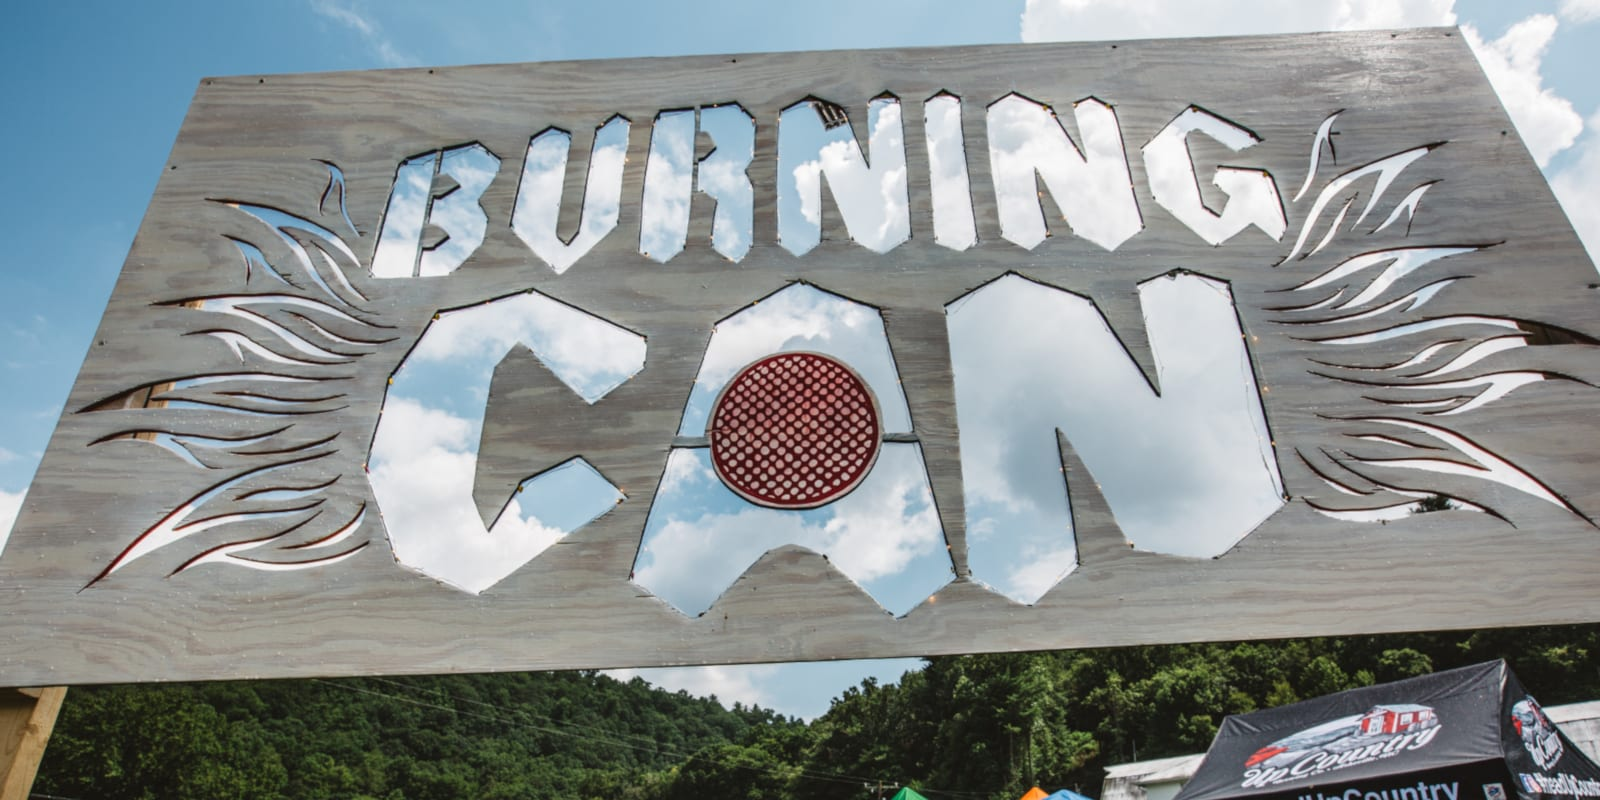 Burning Can Festival Lyons CO Sign